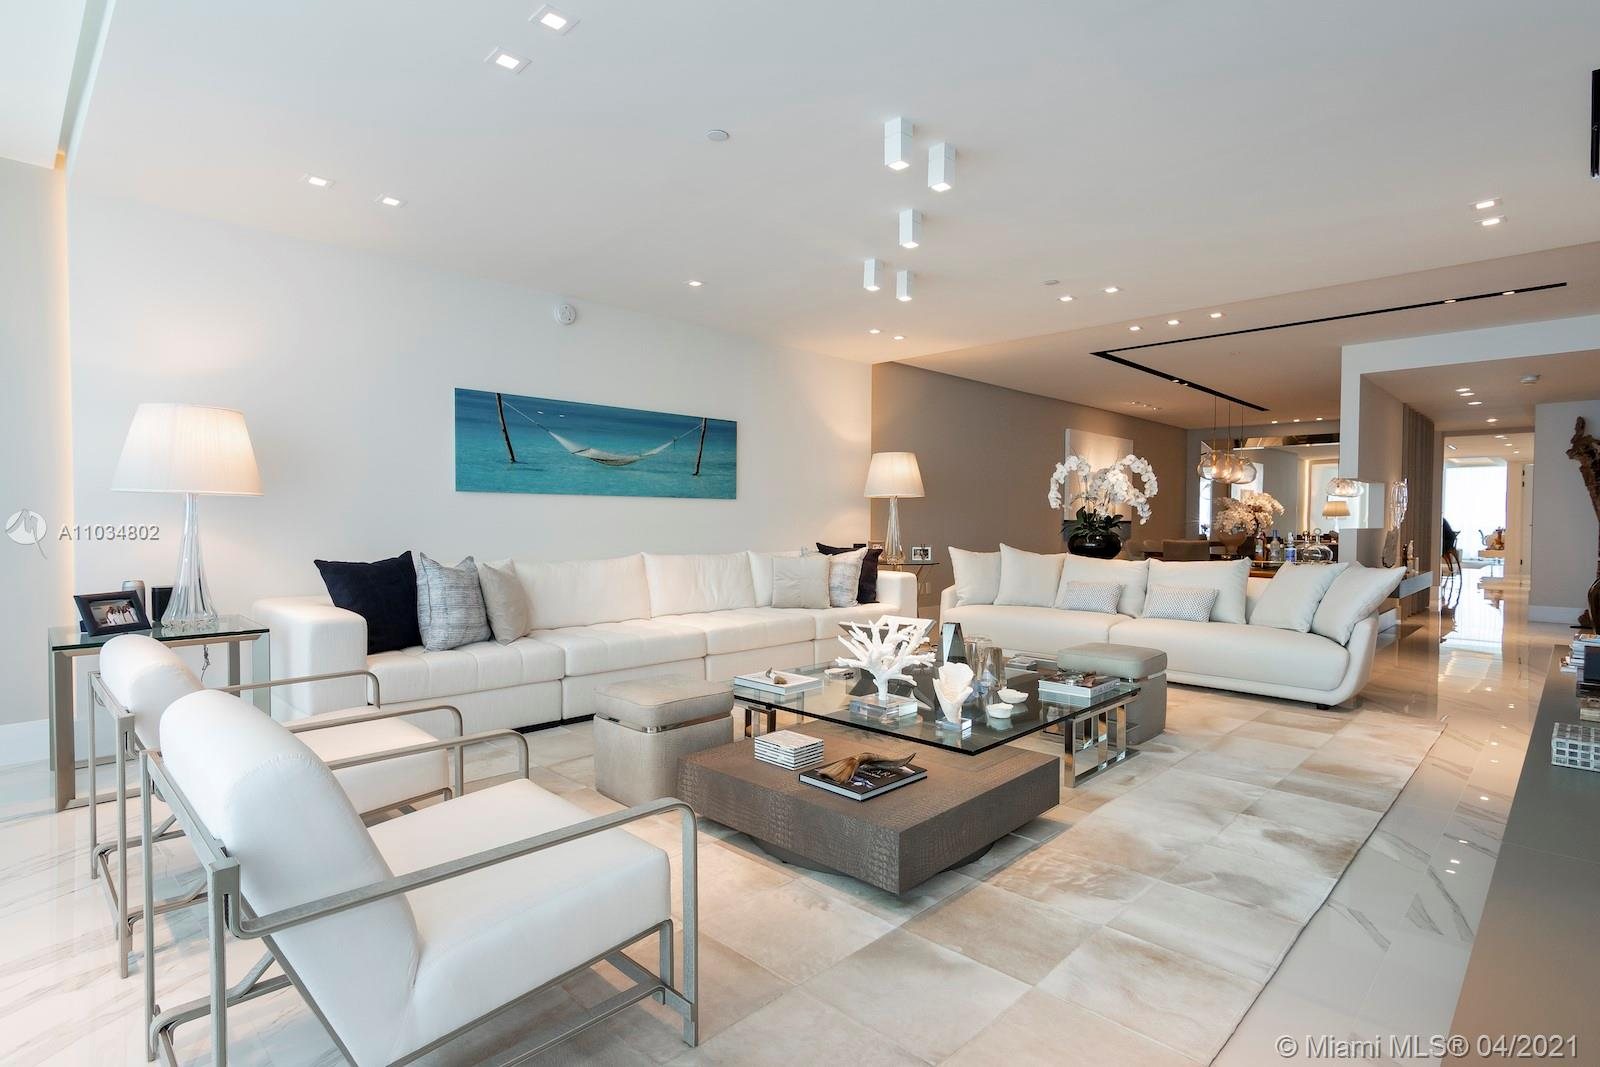 10201 Collins Ave, Unit #1803 Luxury Real Estate